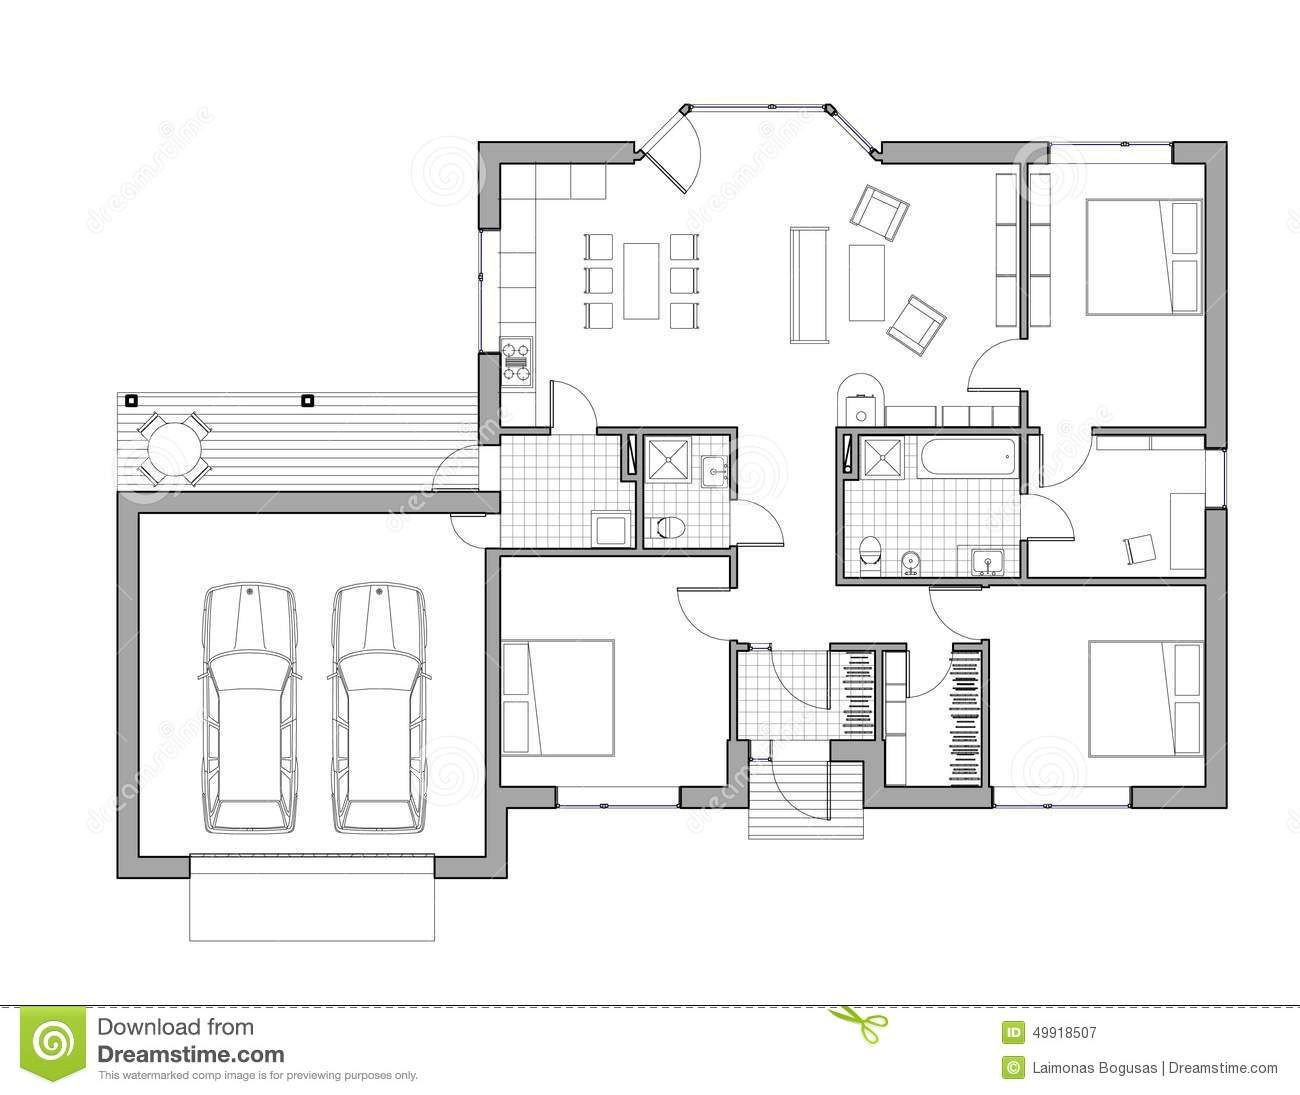 Drawing single family house stock illustration image for Extended family house plans